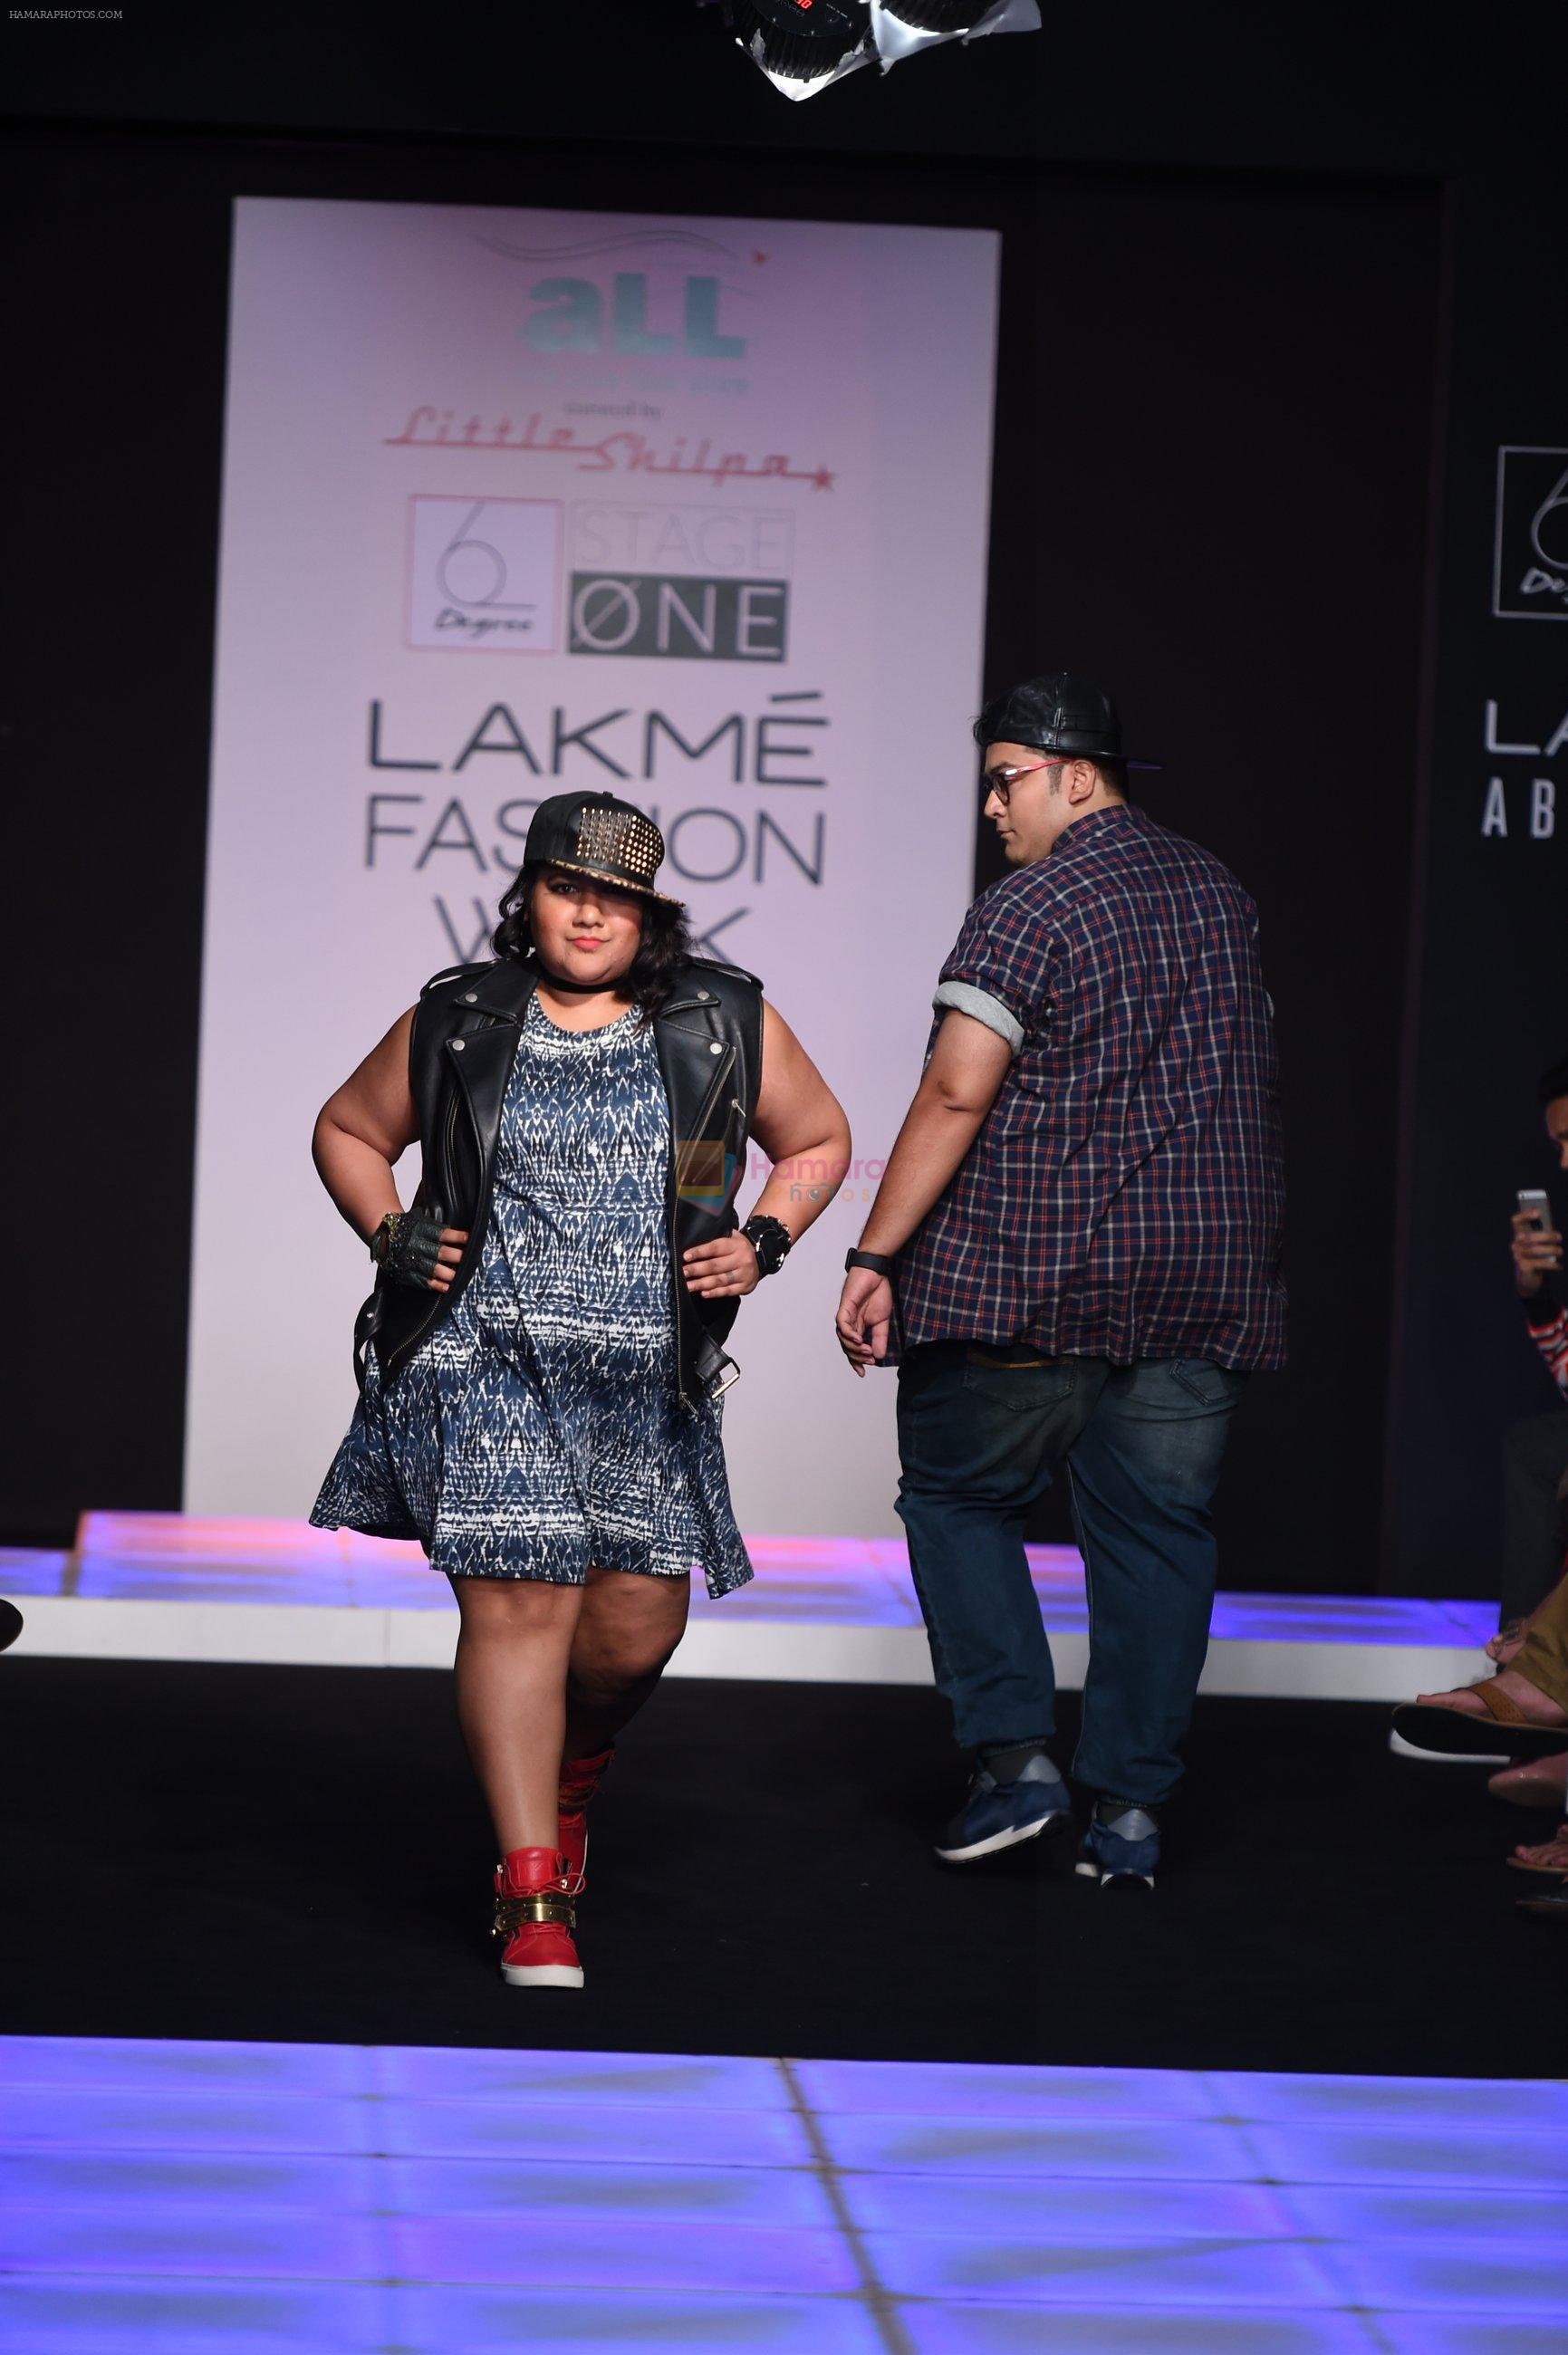 Model walk the ramp for Little Shilpa Show at Lakme Fashion Week 2016 on 28th Aug 2016